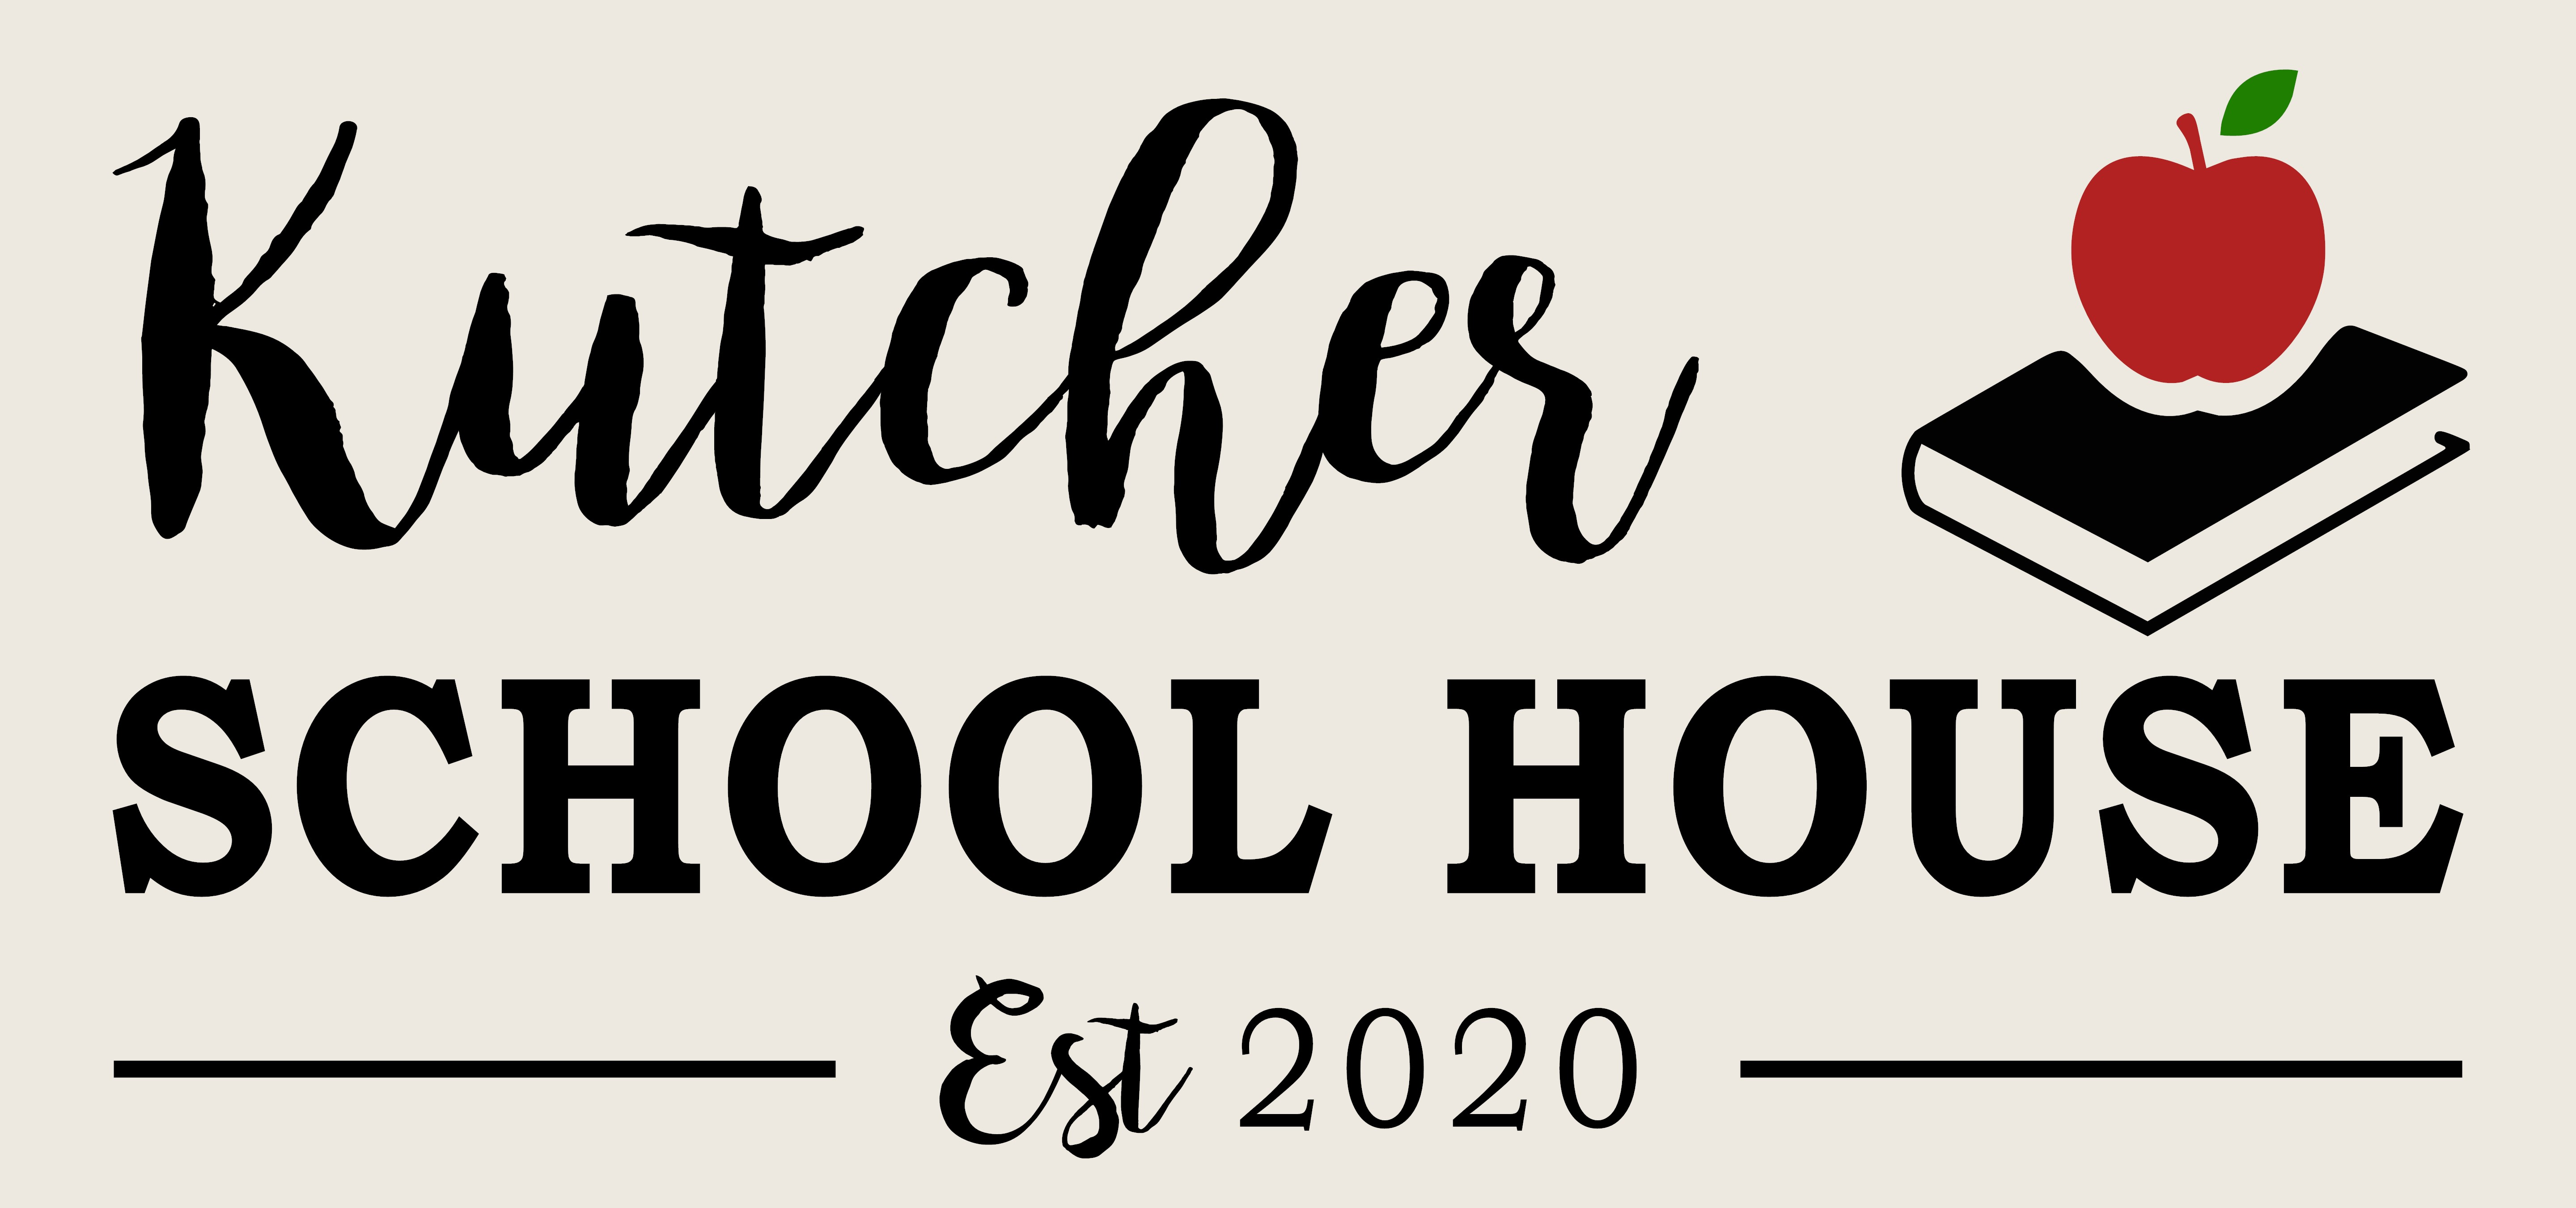 """Customizable School House Sign"" DIY Wood Sign Kit (12inx24in)"